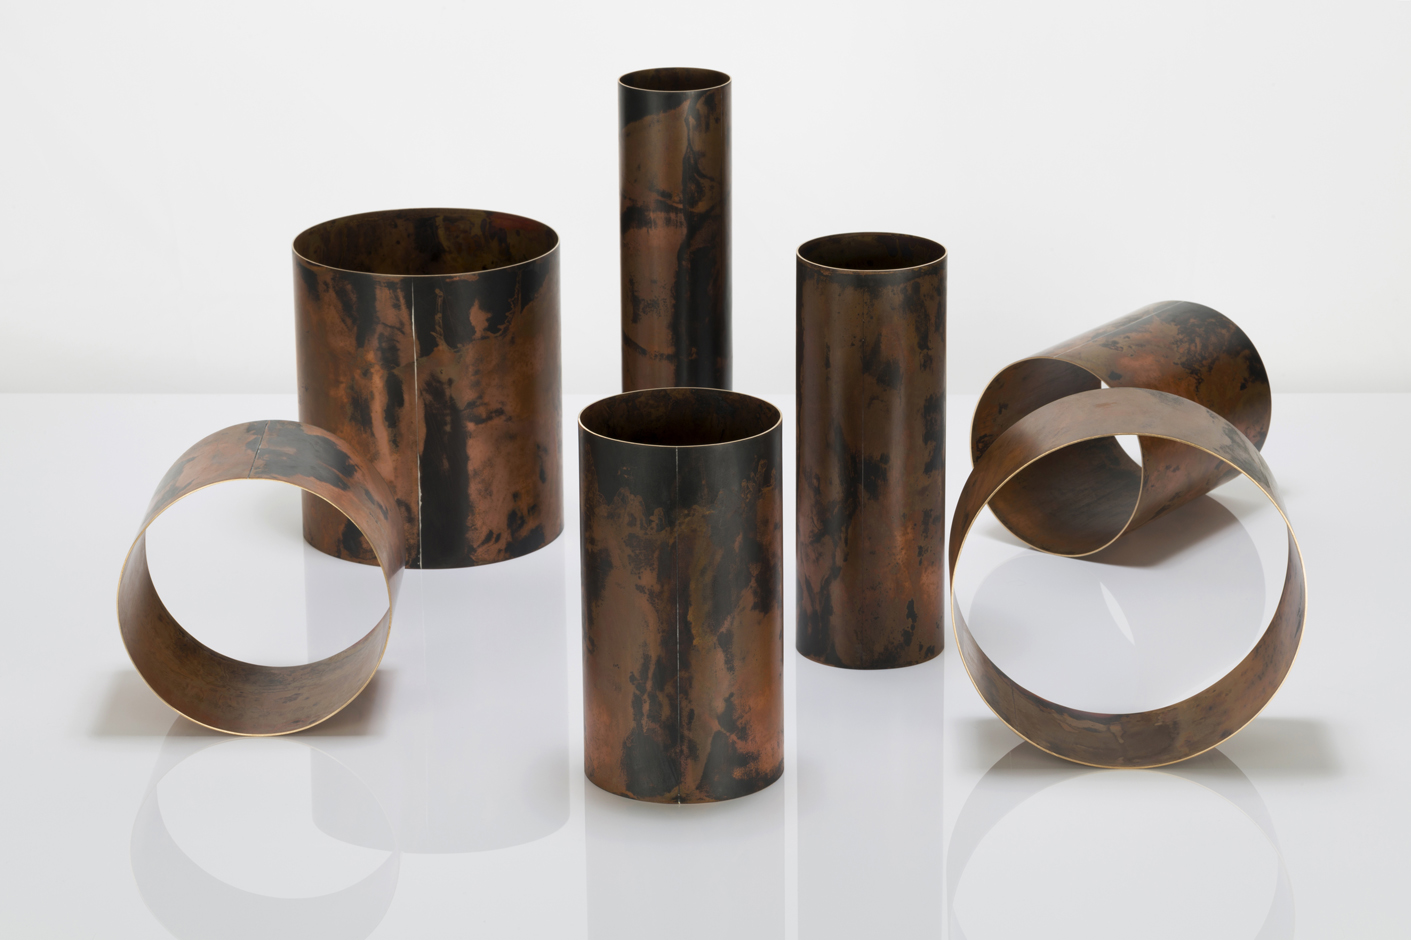 Juliette_Bigley_Cylinders_patinated_gilding_metal_2018_2.jpg